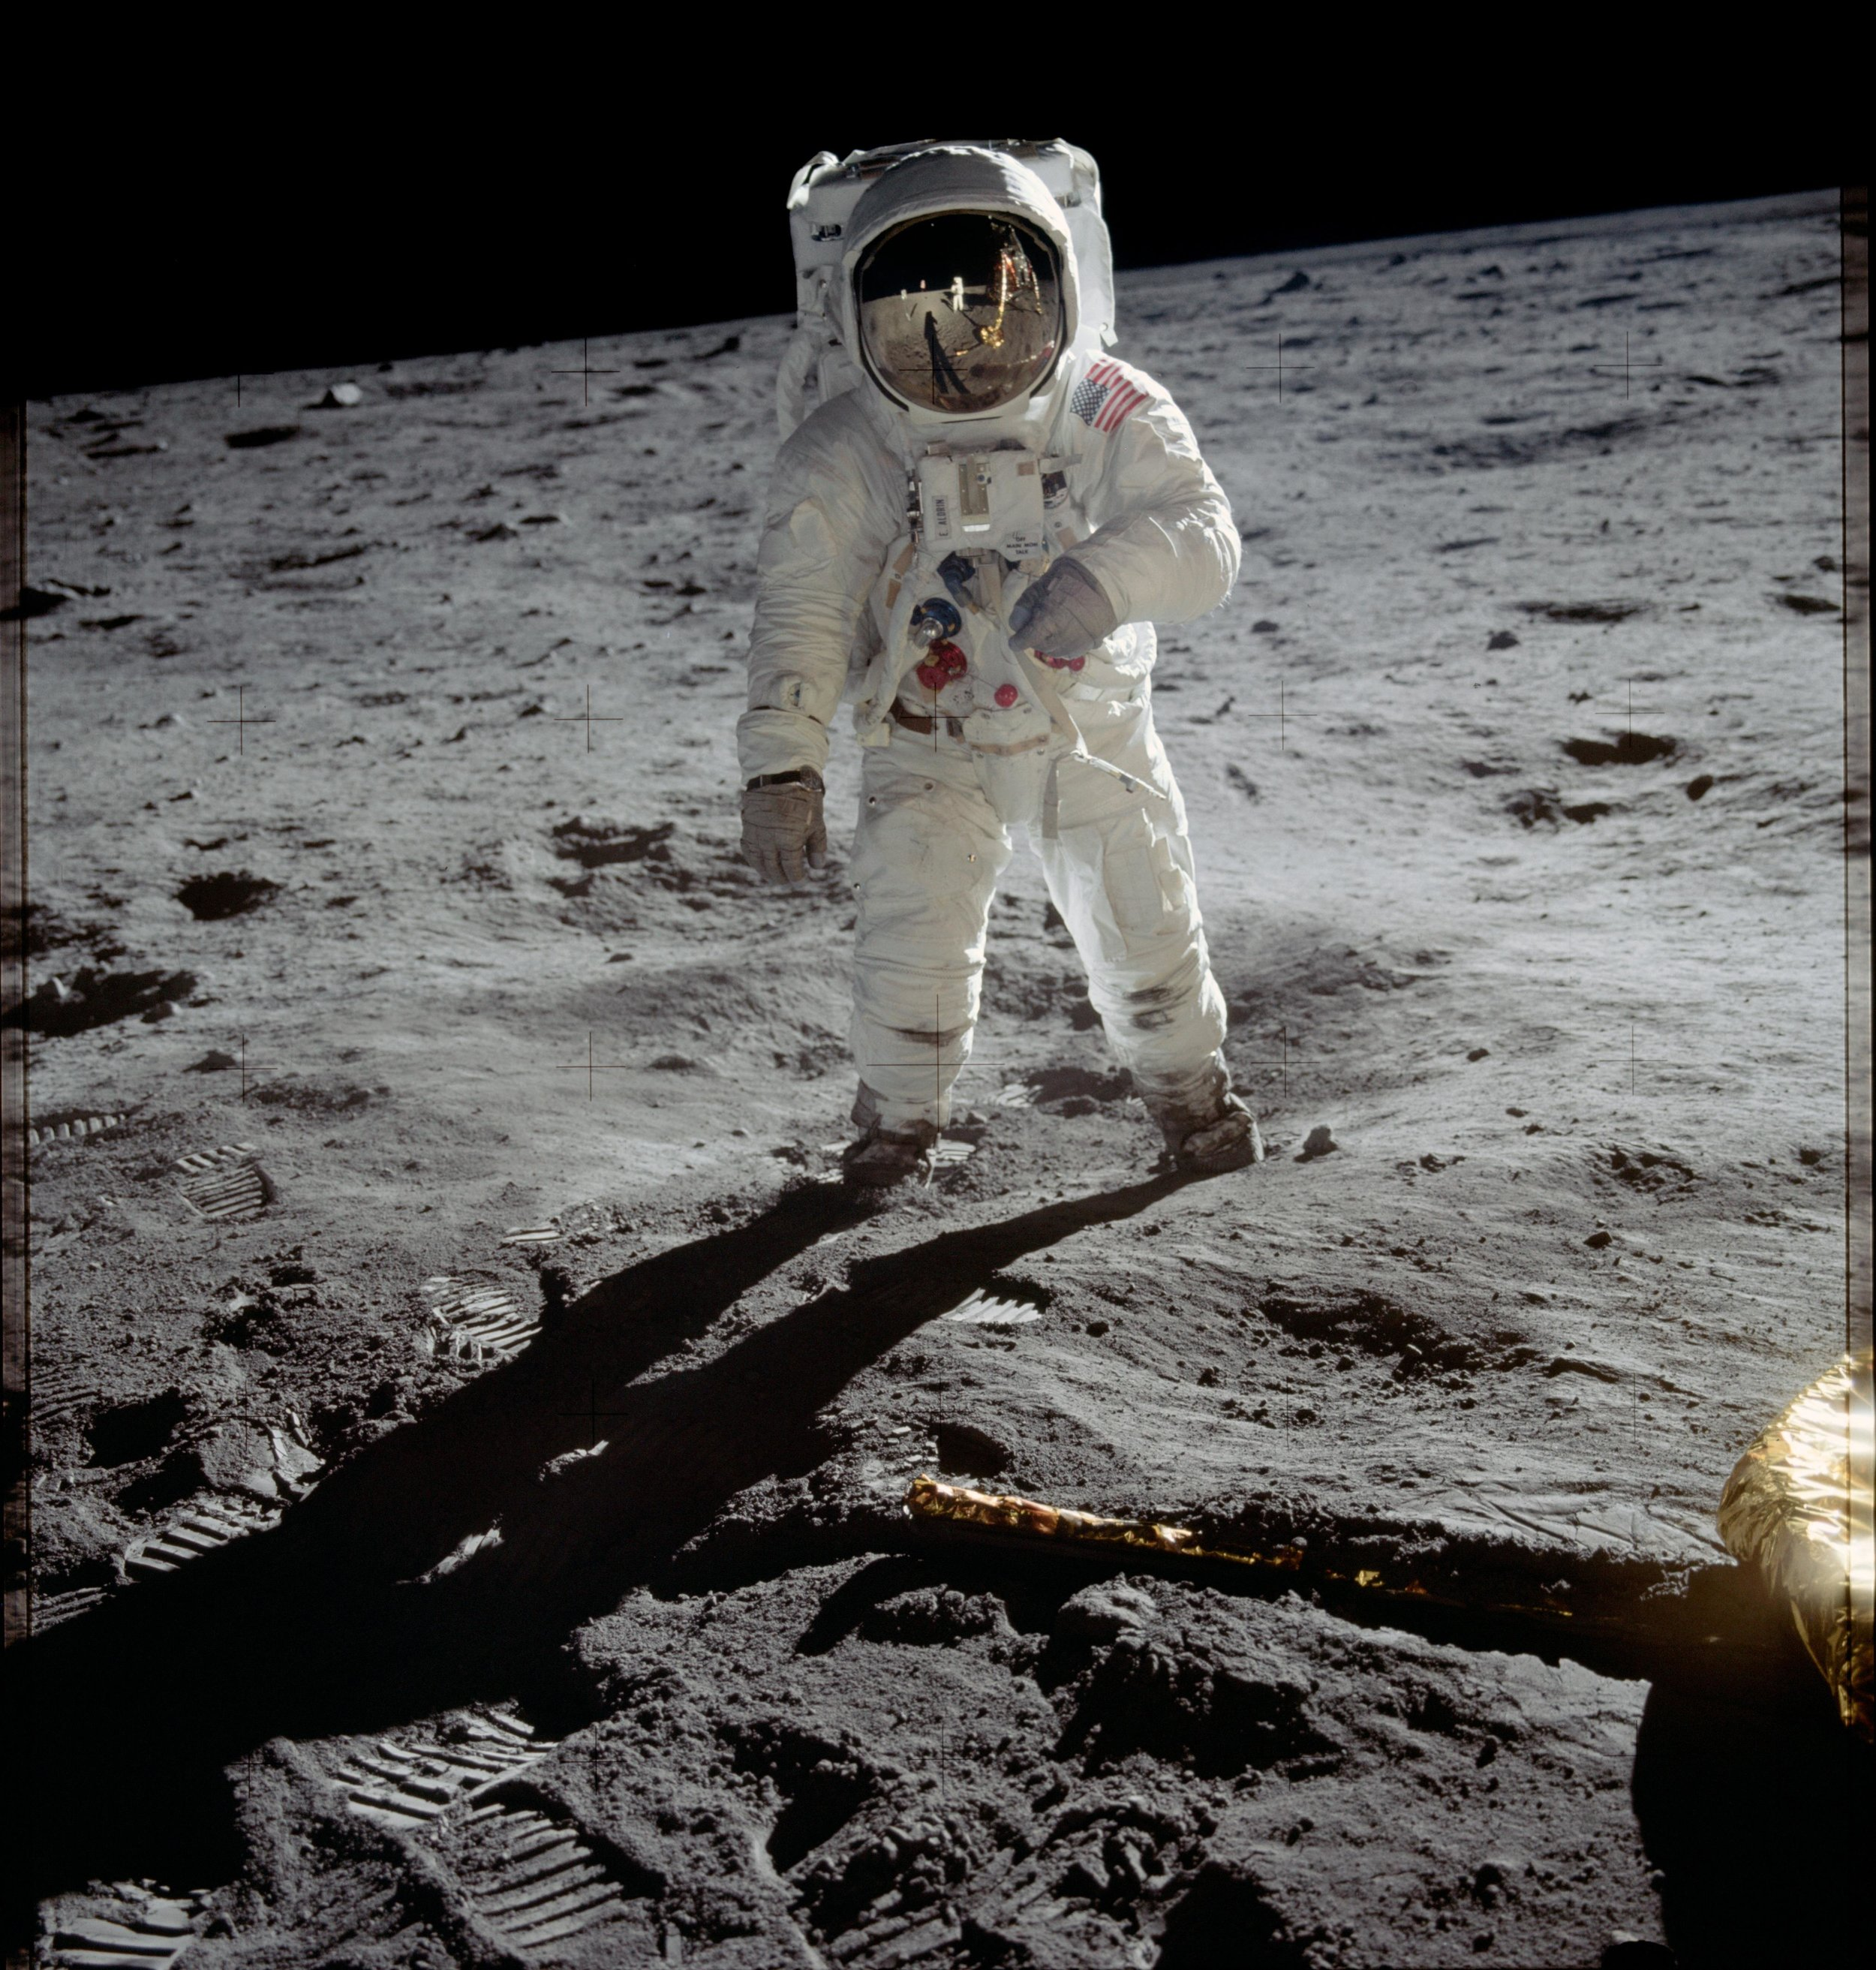 Buzz Aldrin on the moon. July 20, 1969. Photo taken by Neil Armstrong. Credit (public domain):  NASA